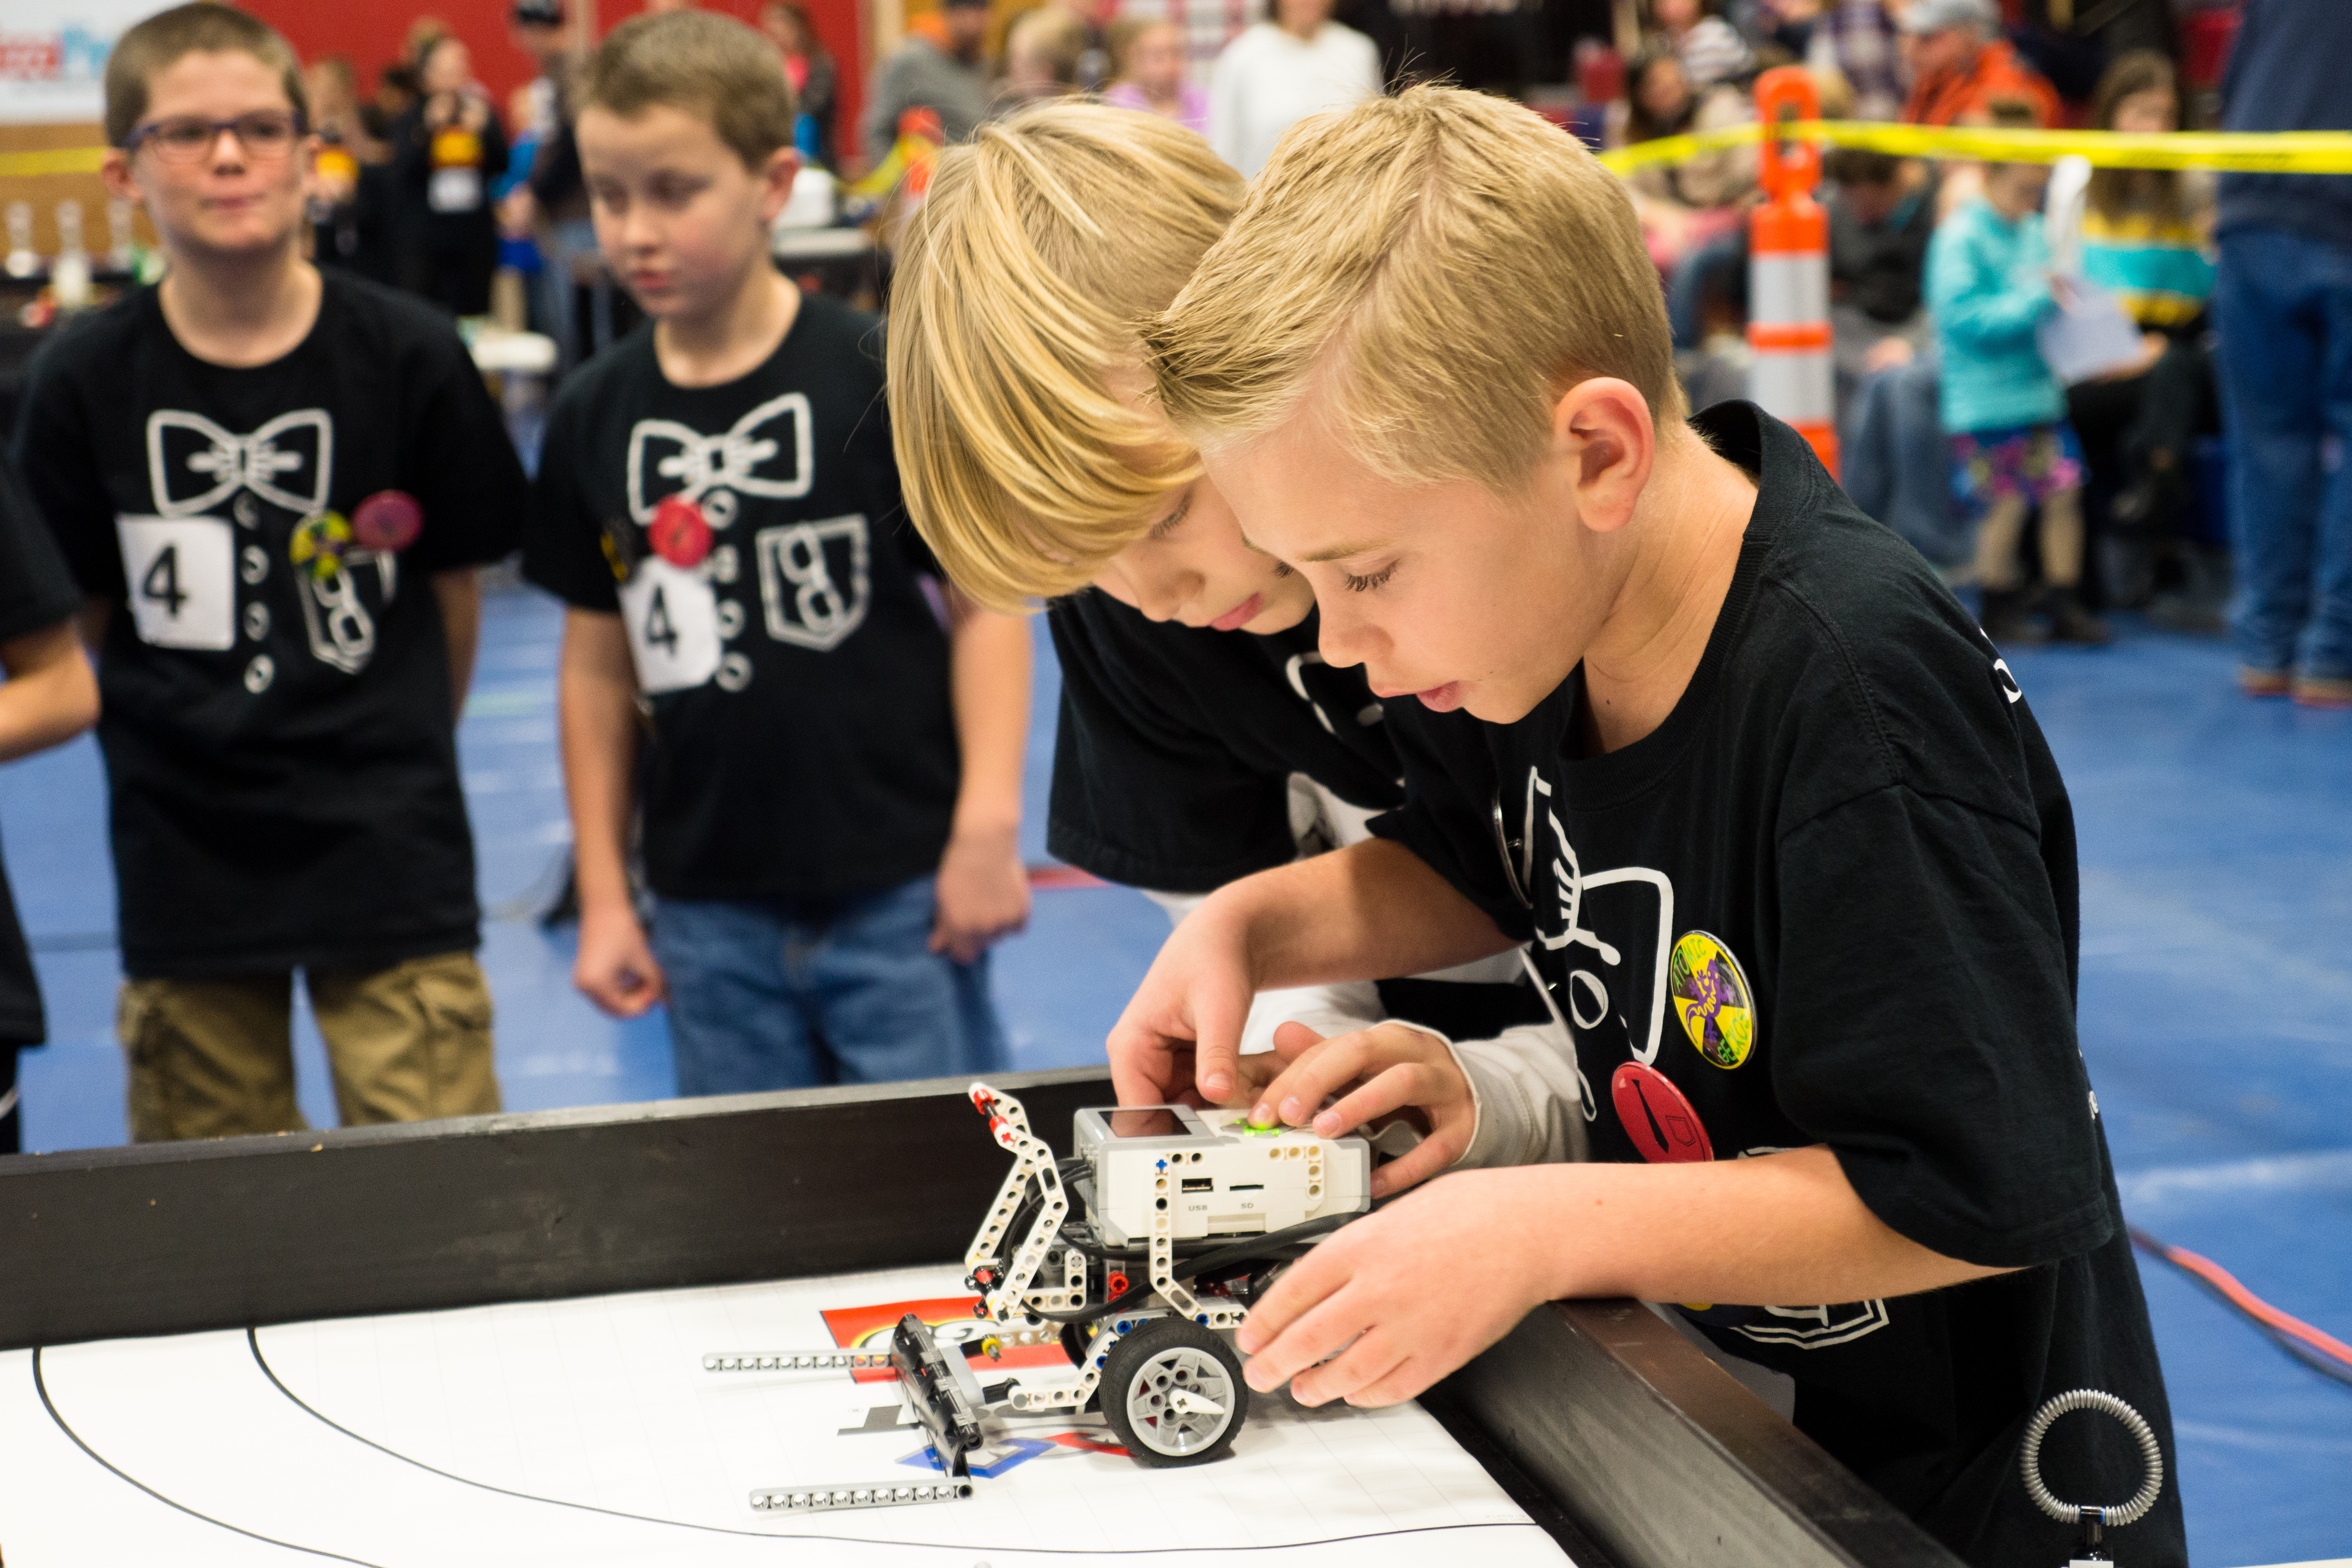 Riverside Robotic Residents compete at the First Lego League competition, Dixie State University, St. George, Utah, Jan. 7, 2017 | Photo by and courtesy of Sterling Jones, St. George News